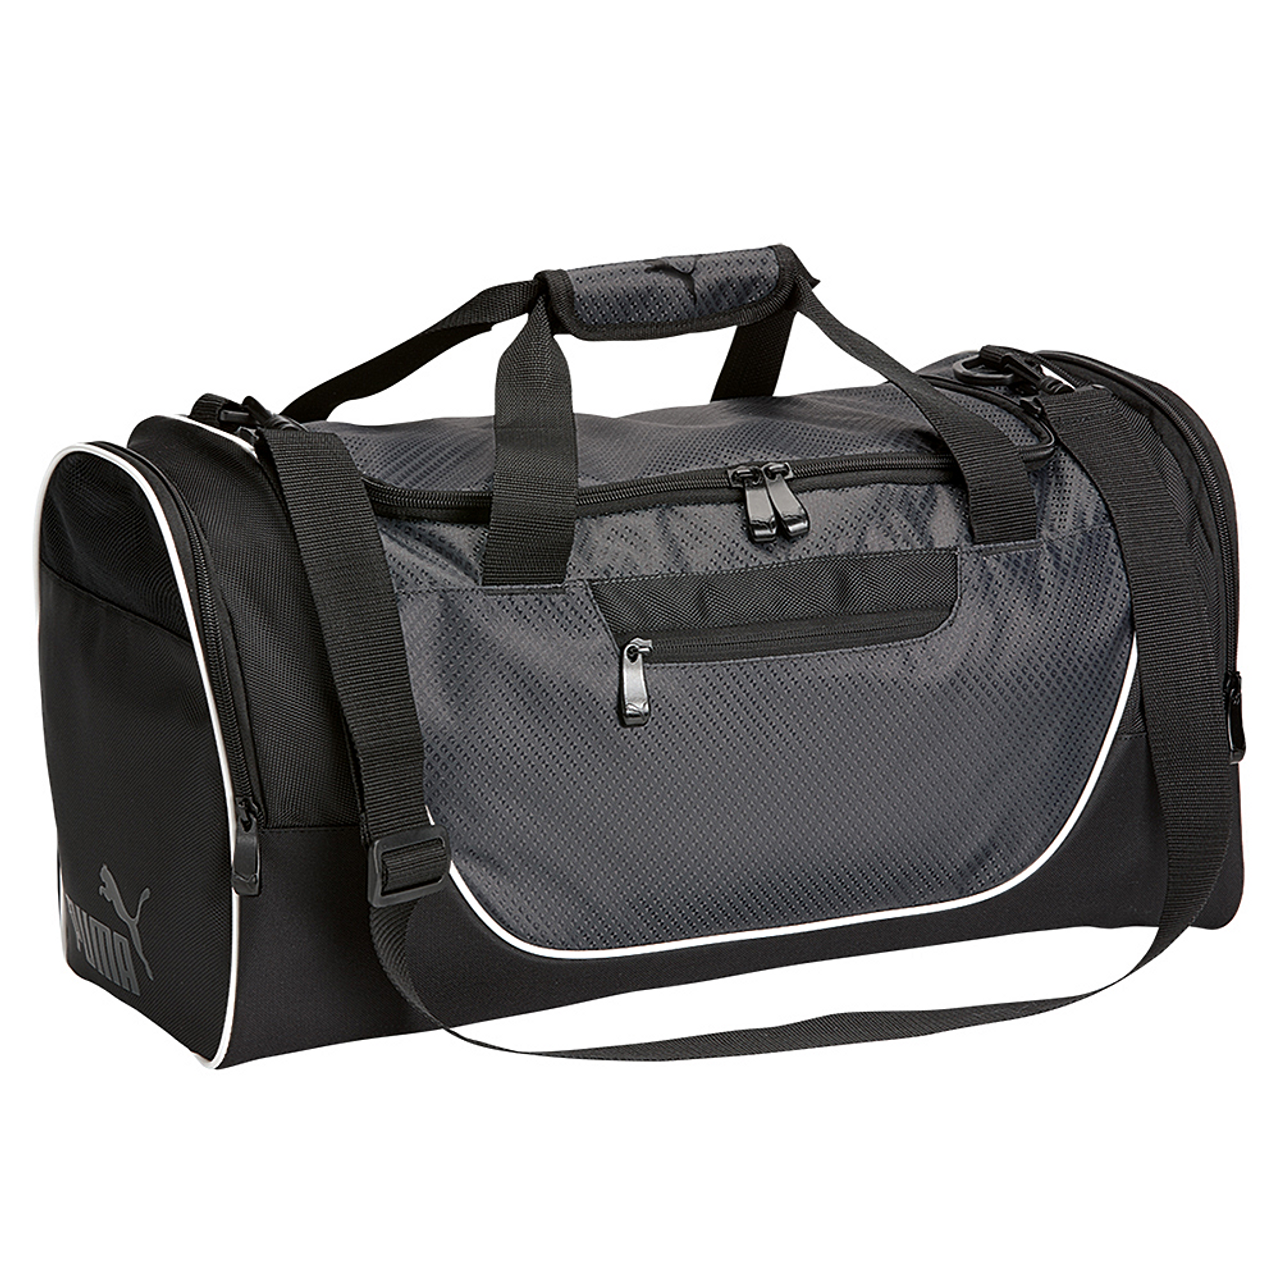 Dark Grey Black - PSC1032 Puma 21 Duffle Bag | T-shirt.ca